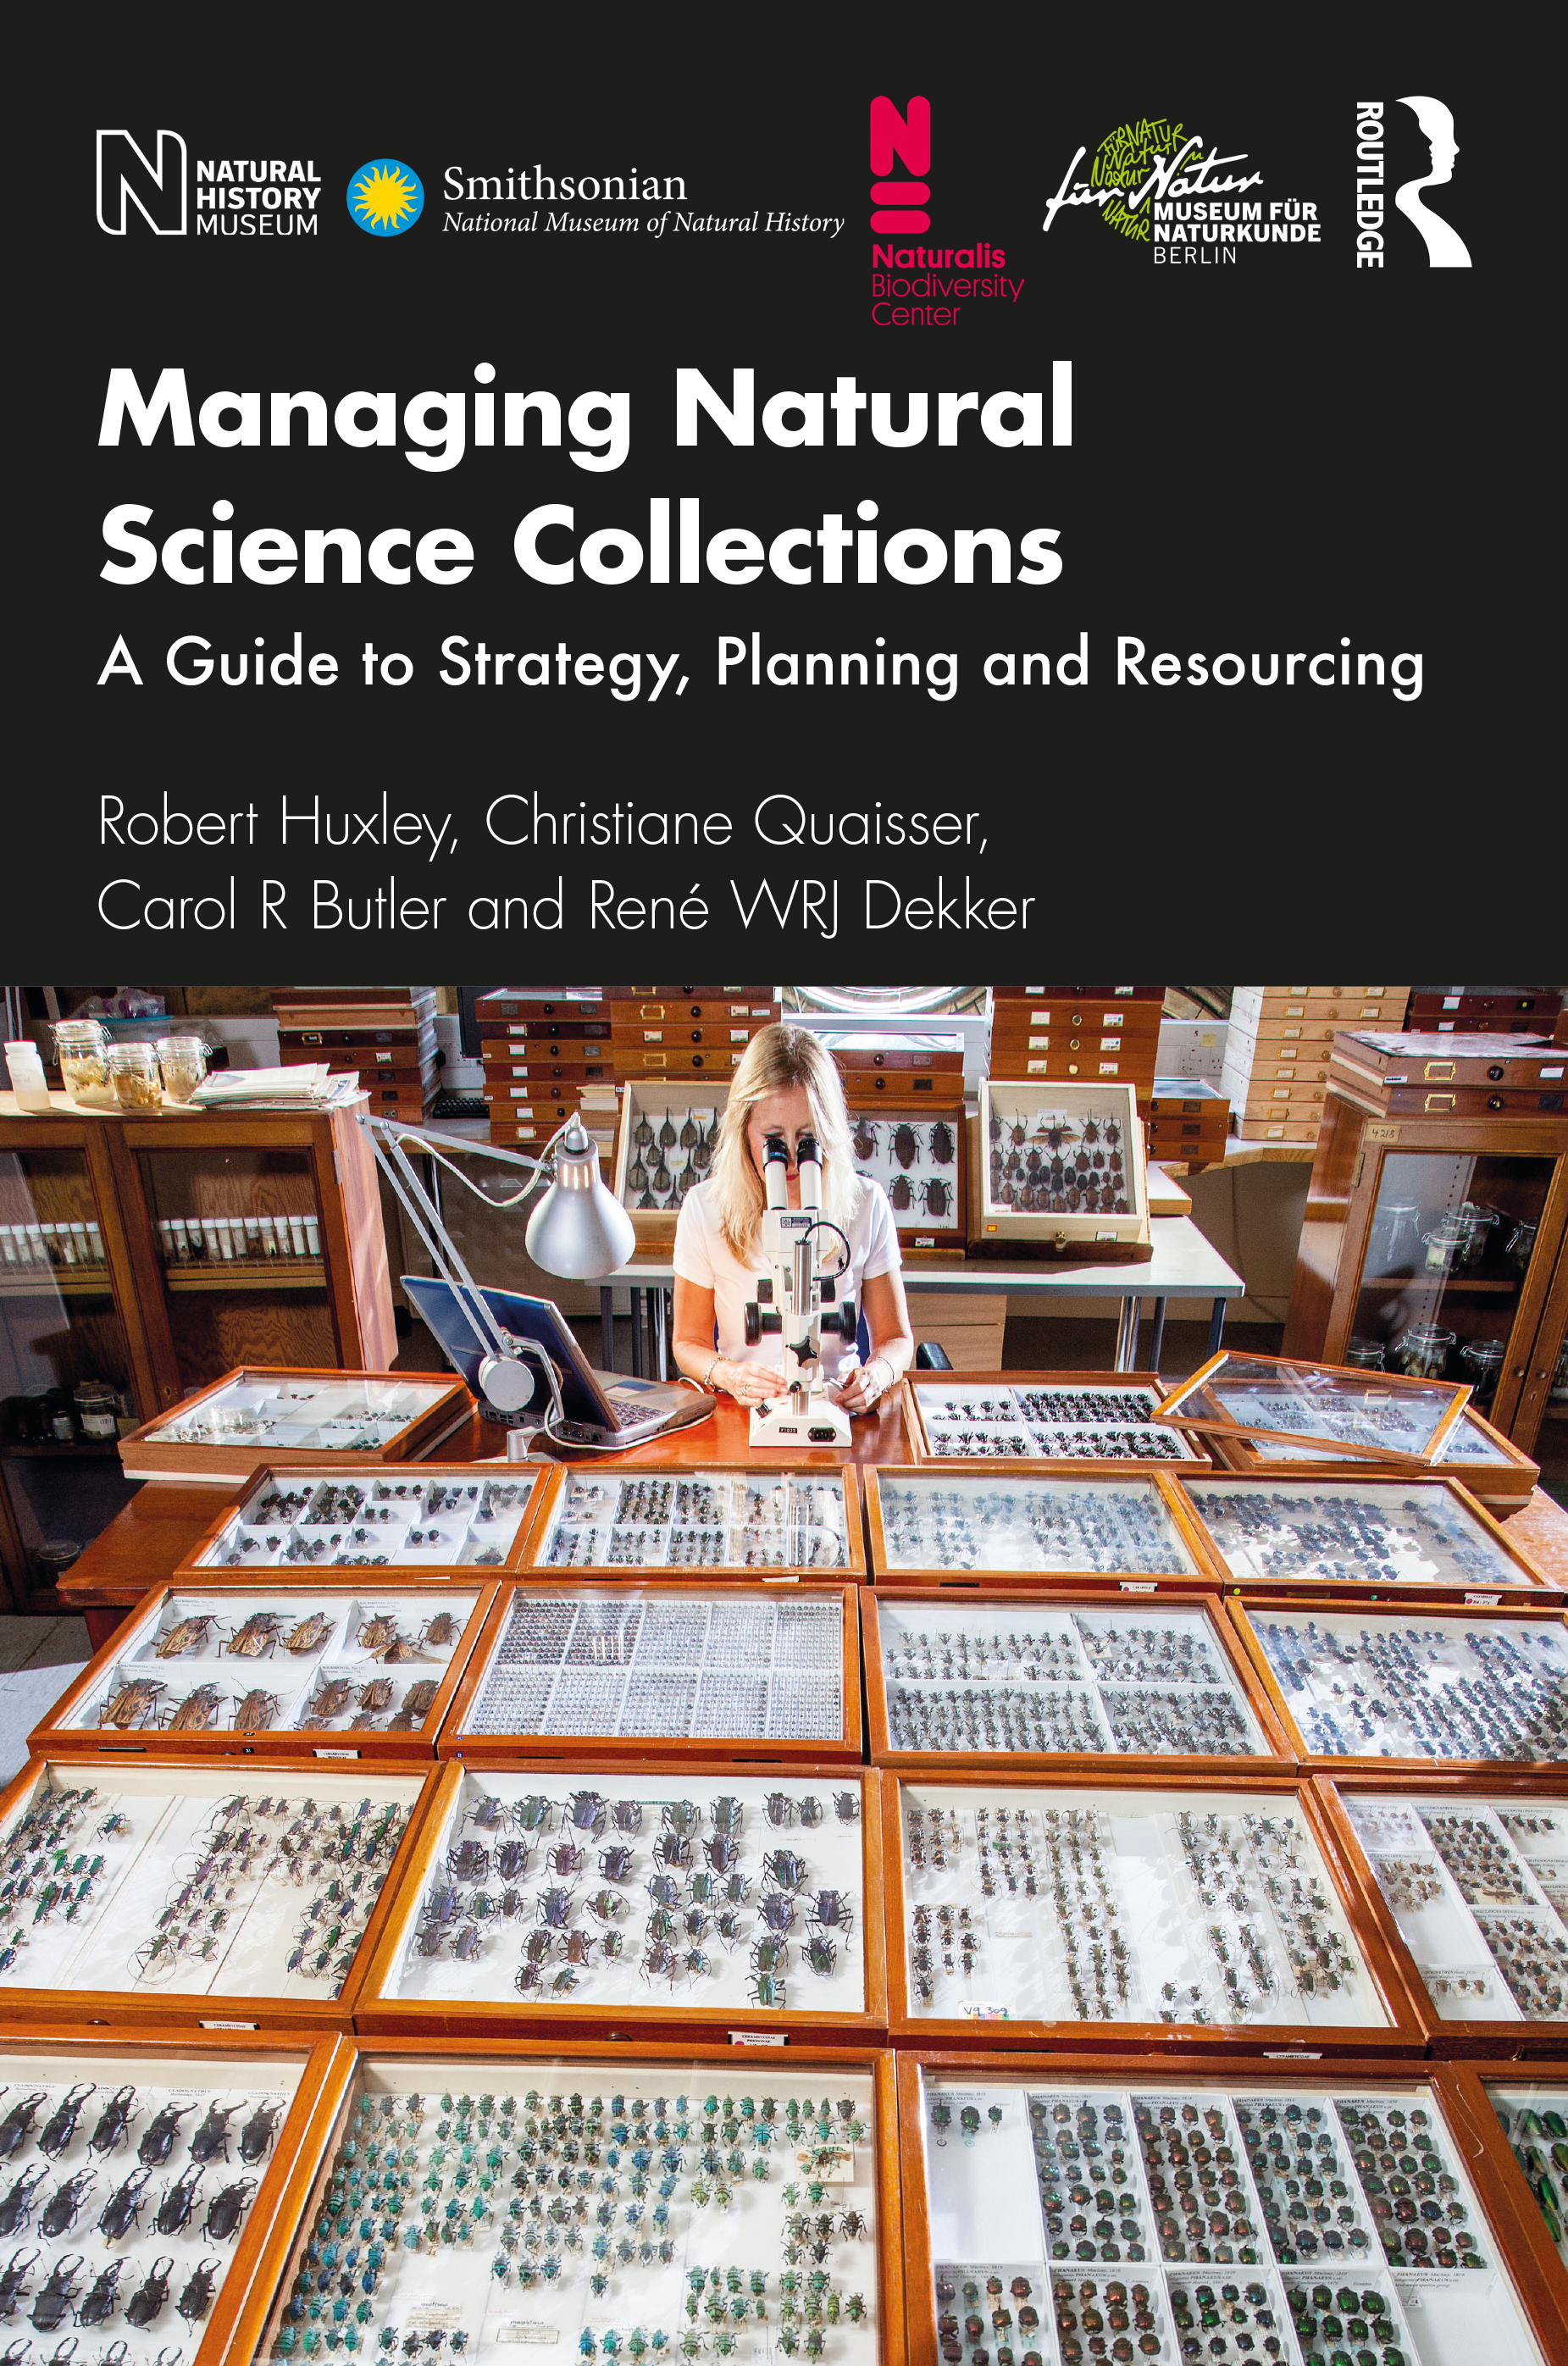 Managing Natural Science Collections: A Guide to Strategy, Planning and Resourcing book cover